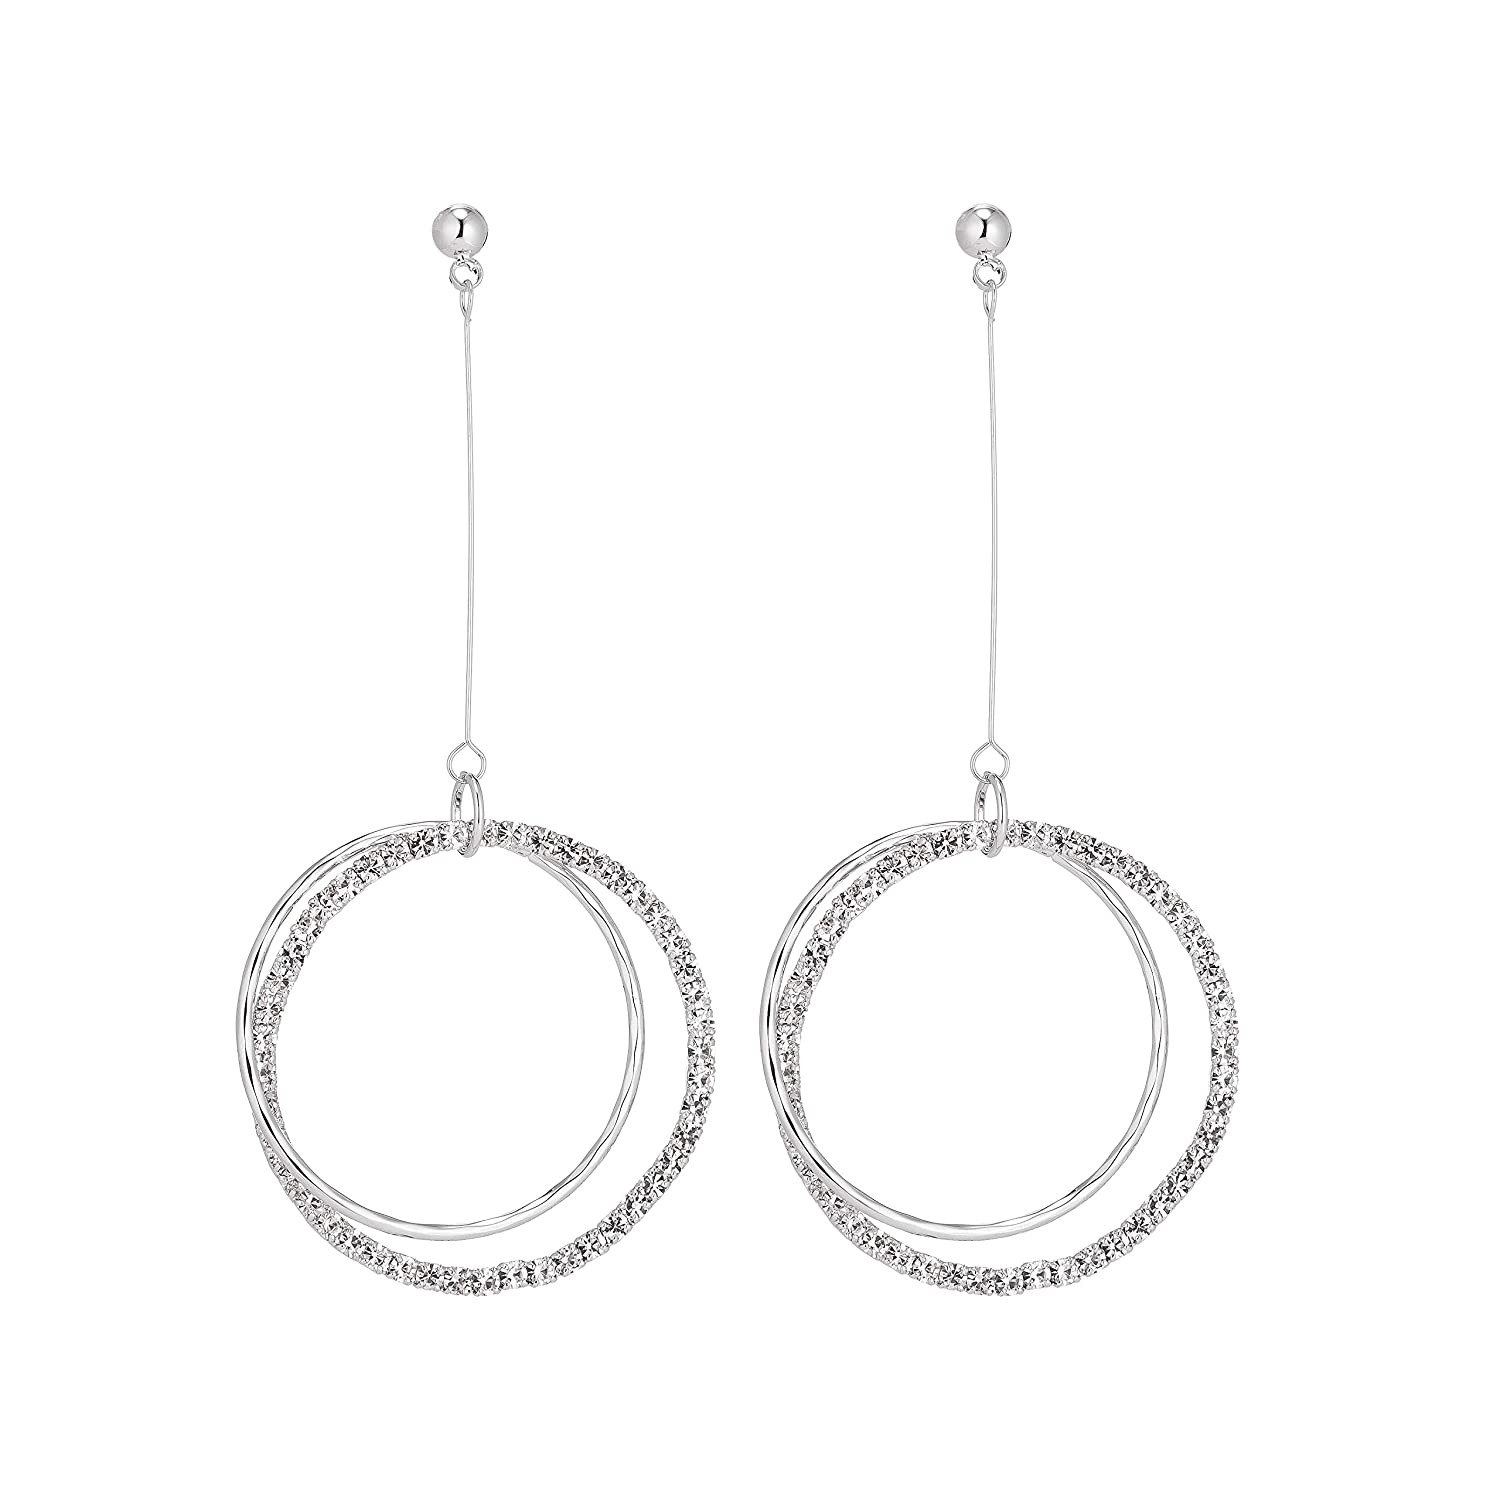 Dongstar Cubic-Zirconia Crystal Double Hoop Premium Quality Drop and Dangle Copper Earrings